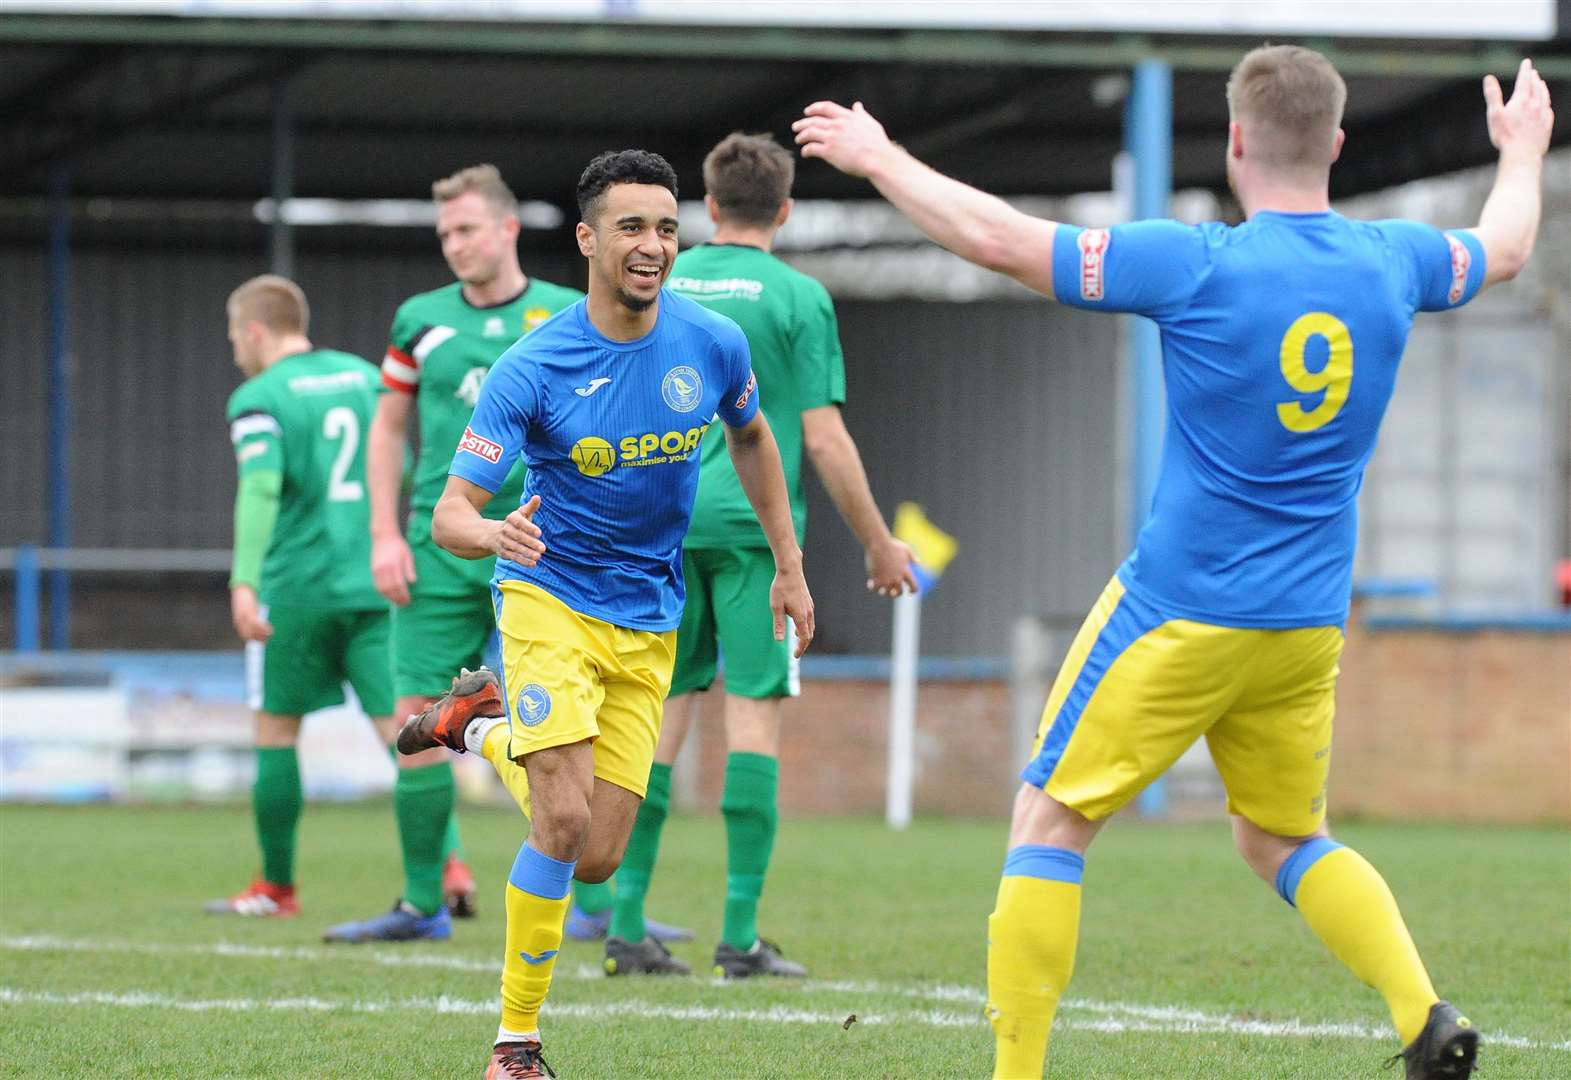 King's Lynn Town pick up three crucial points in their quest to reach Southern League Central Premier play-offs